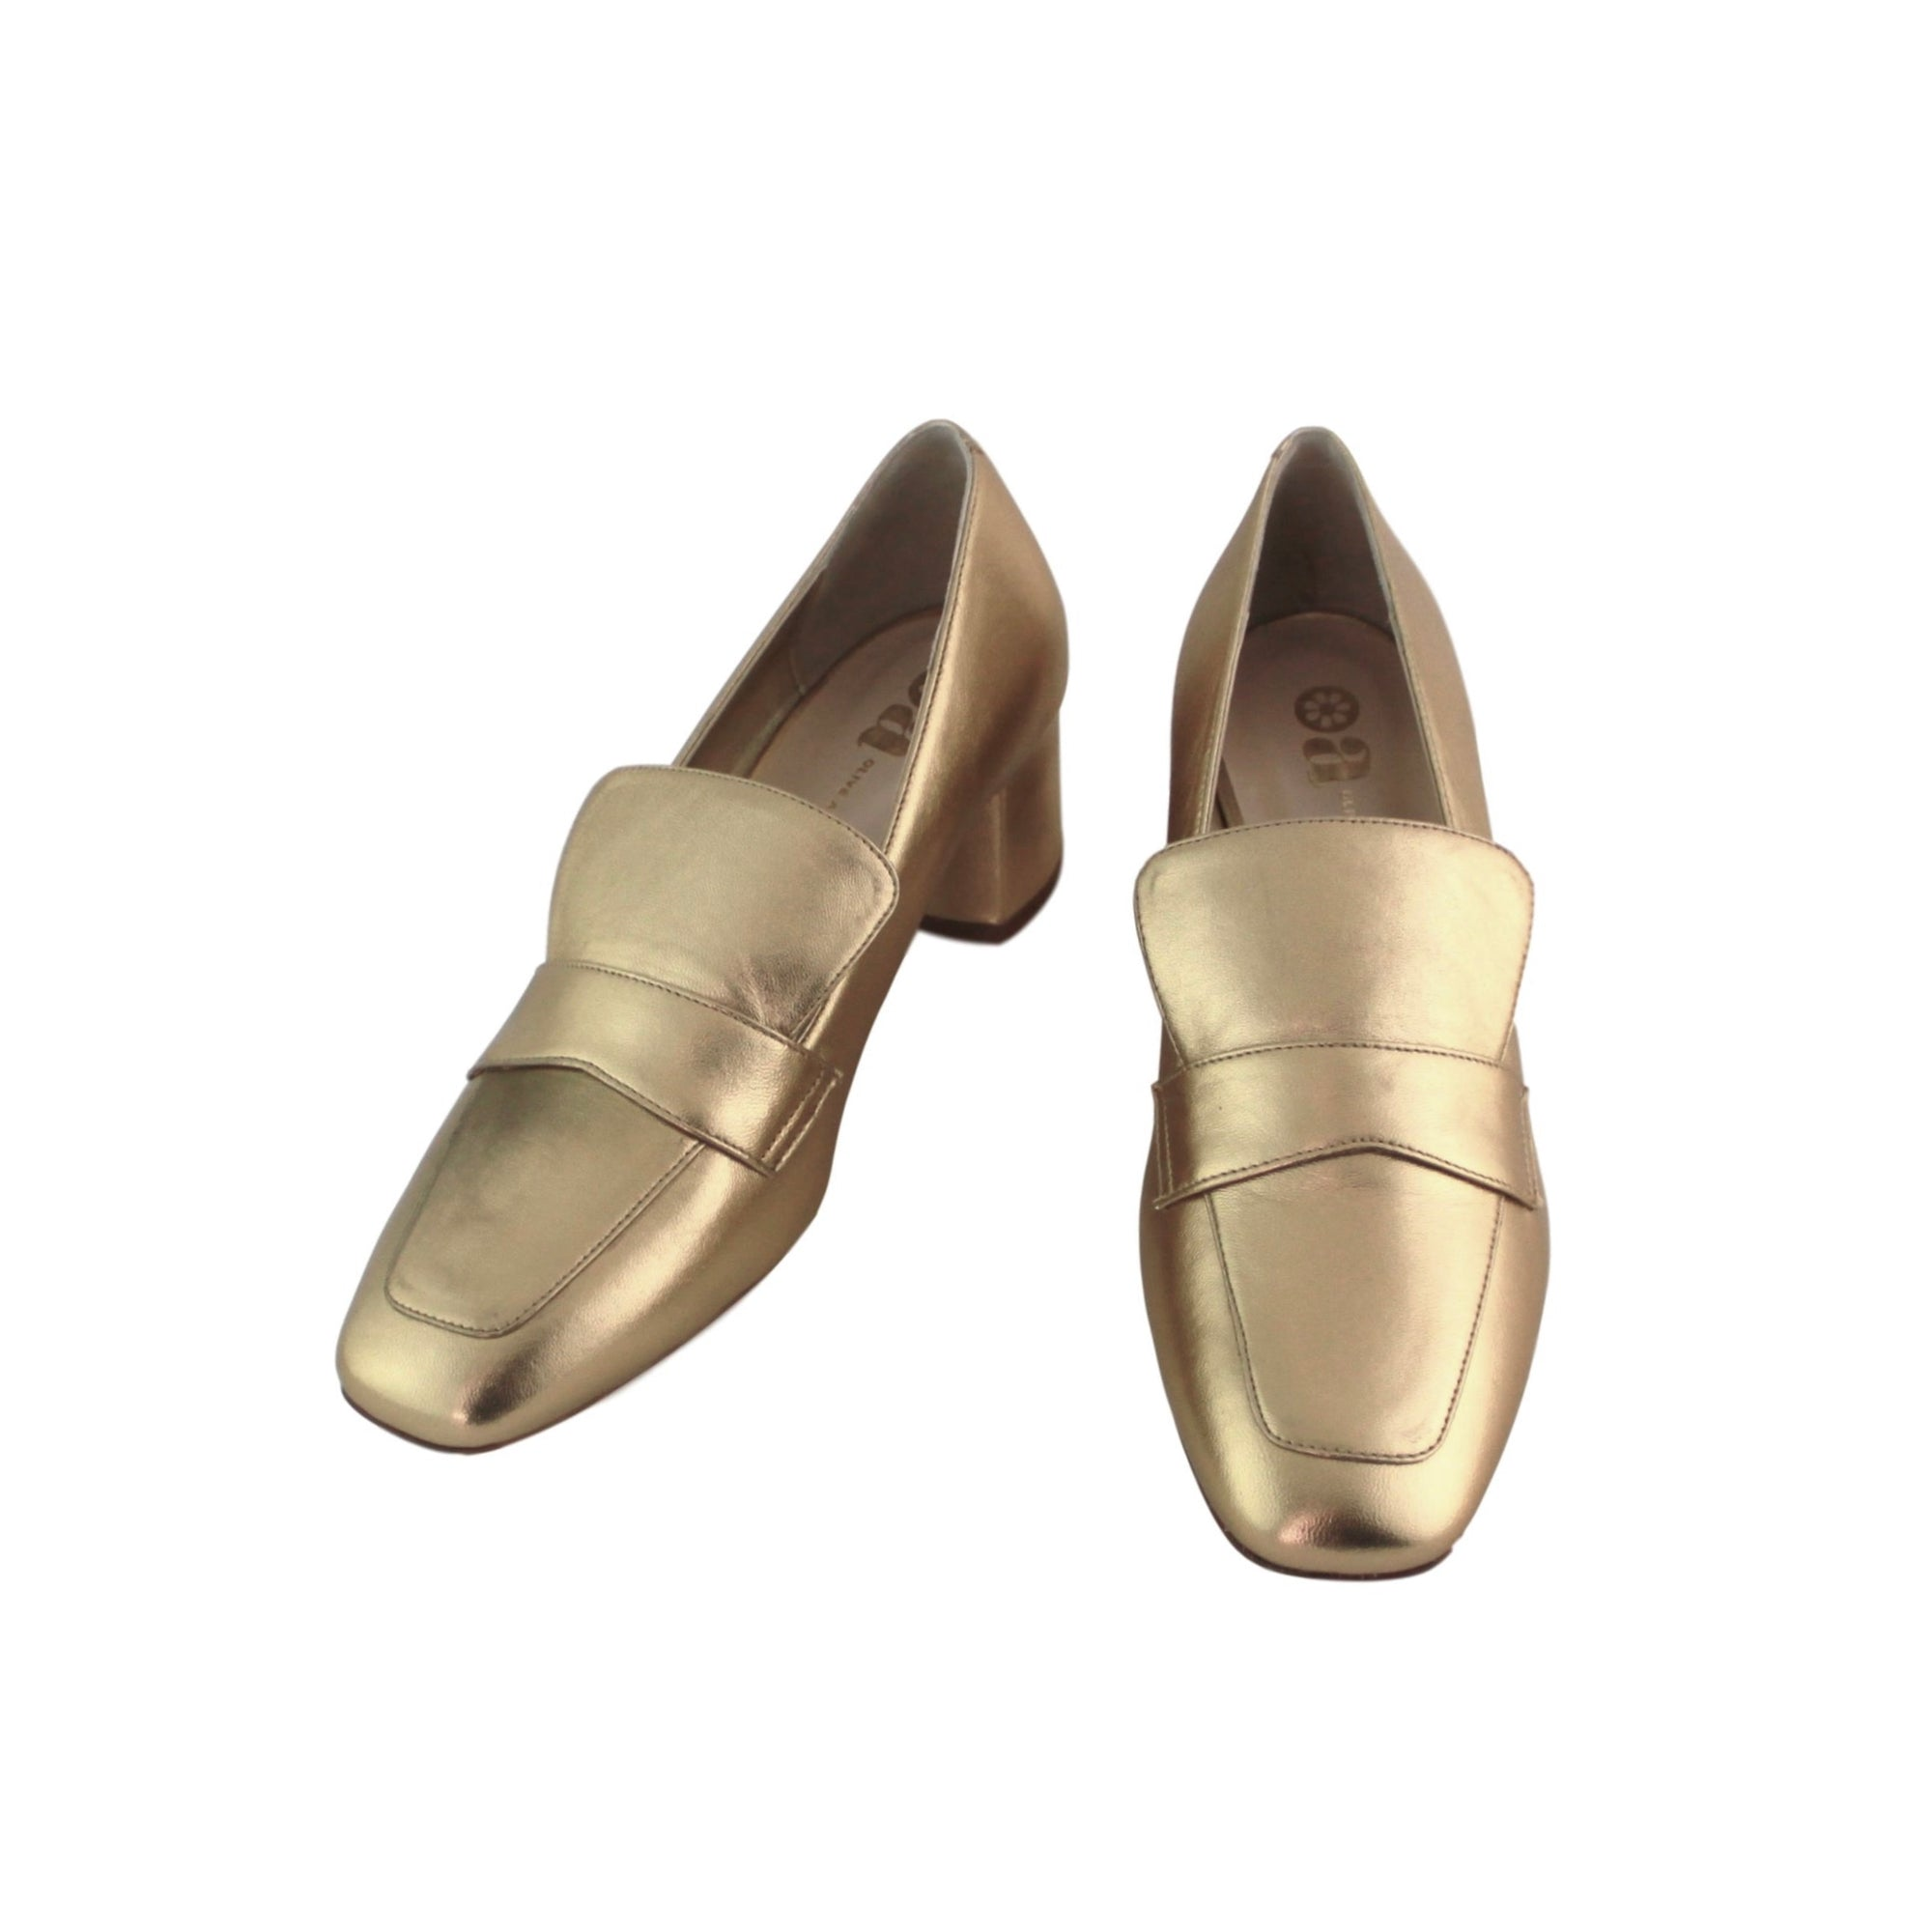 Ursula Loafer - Gold Nappa Leather